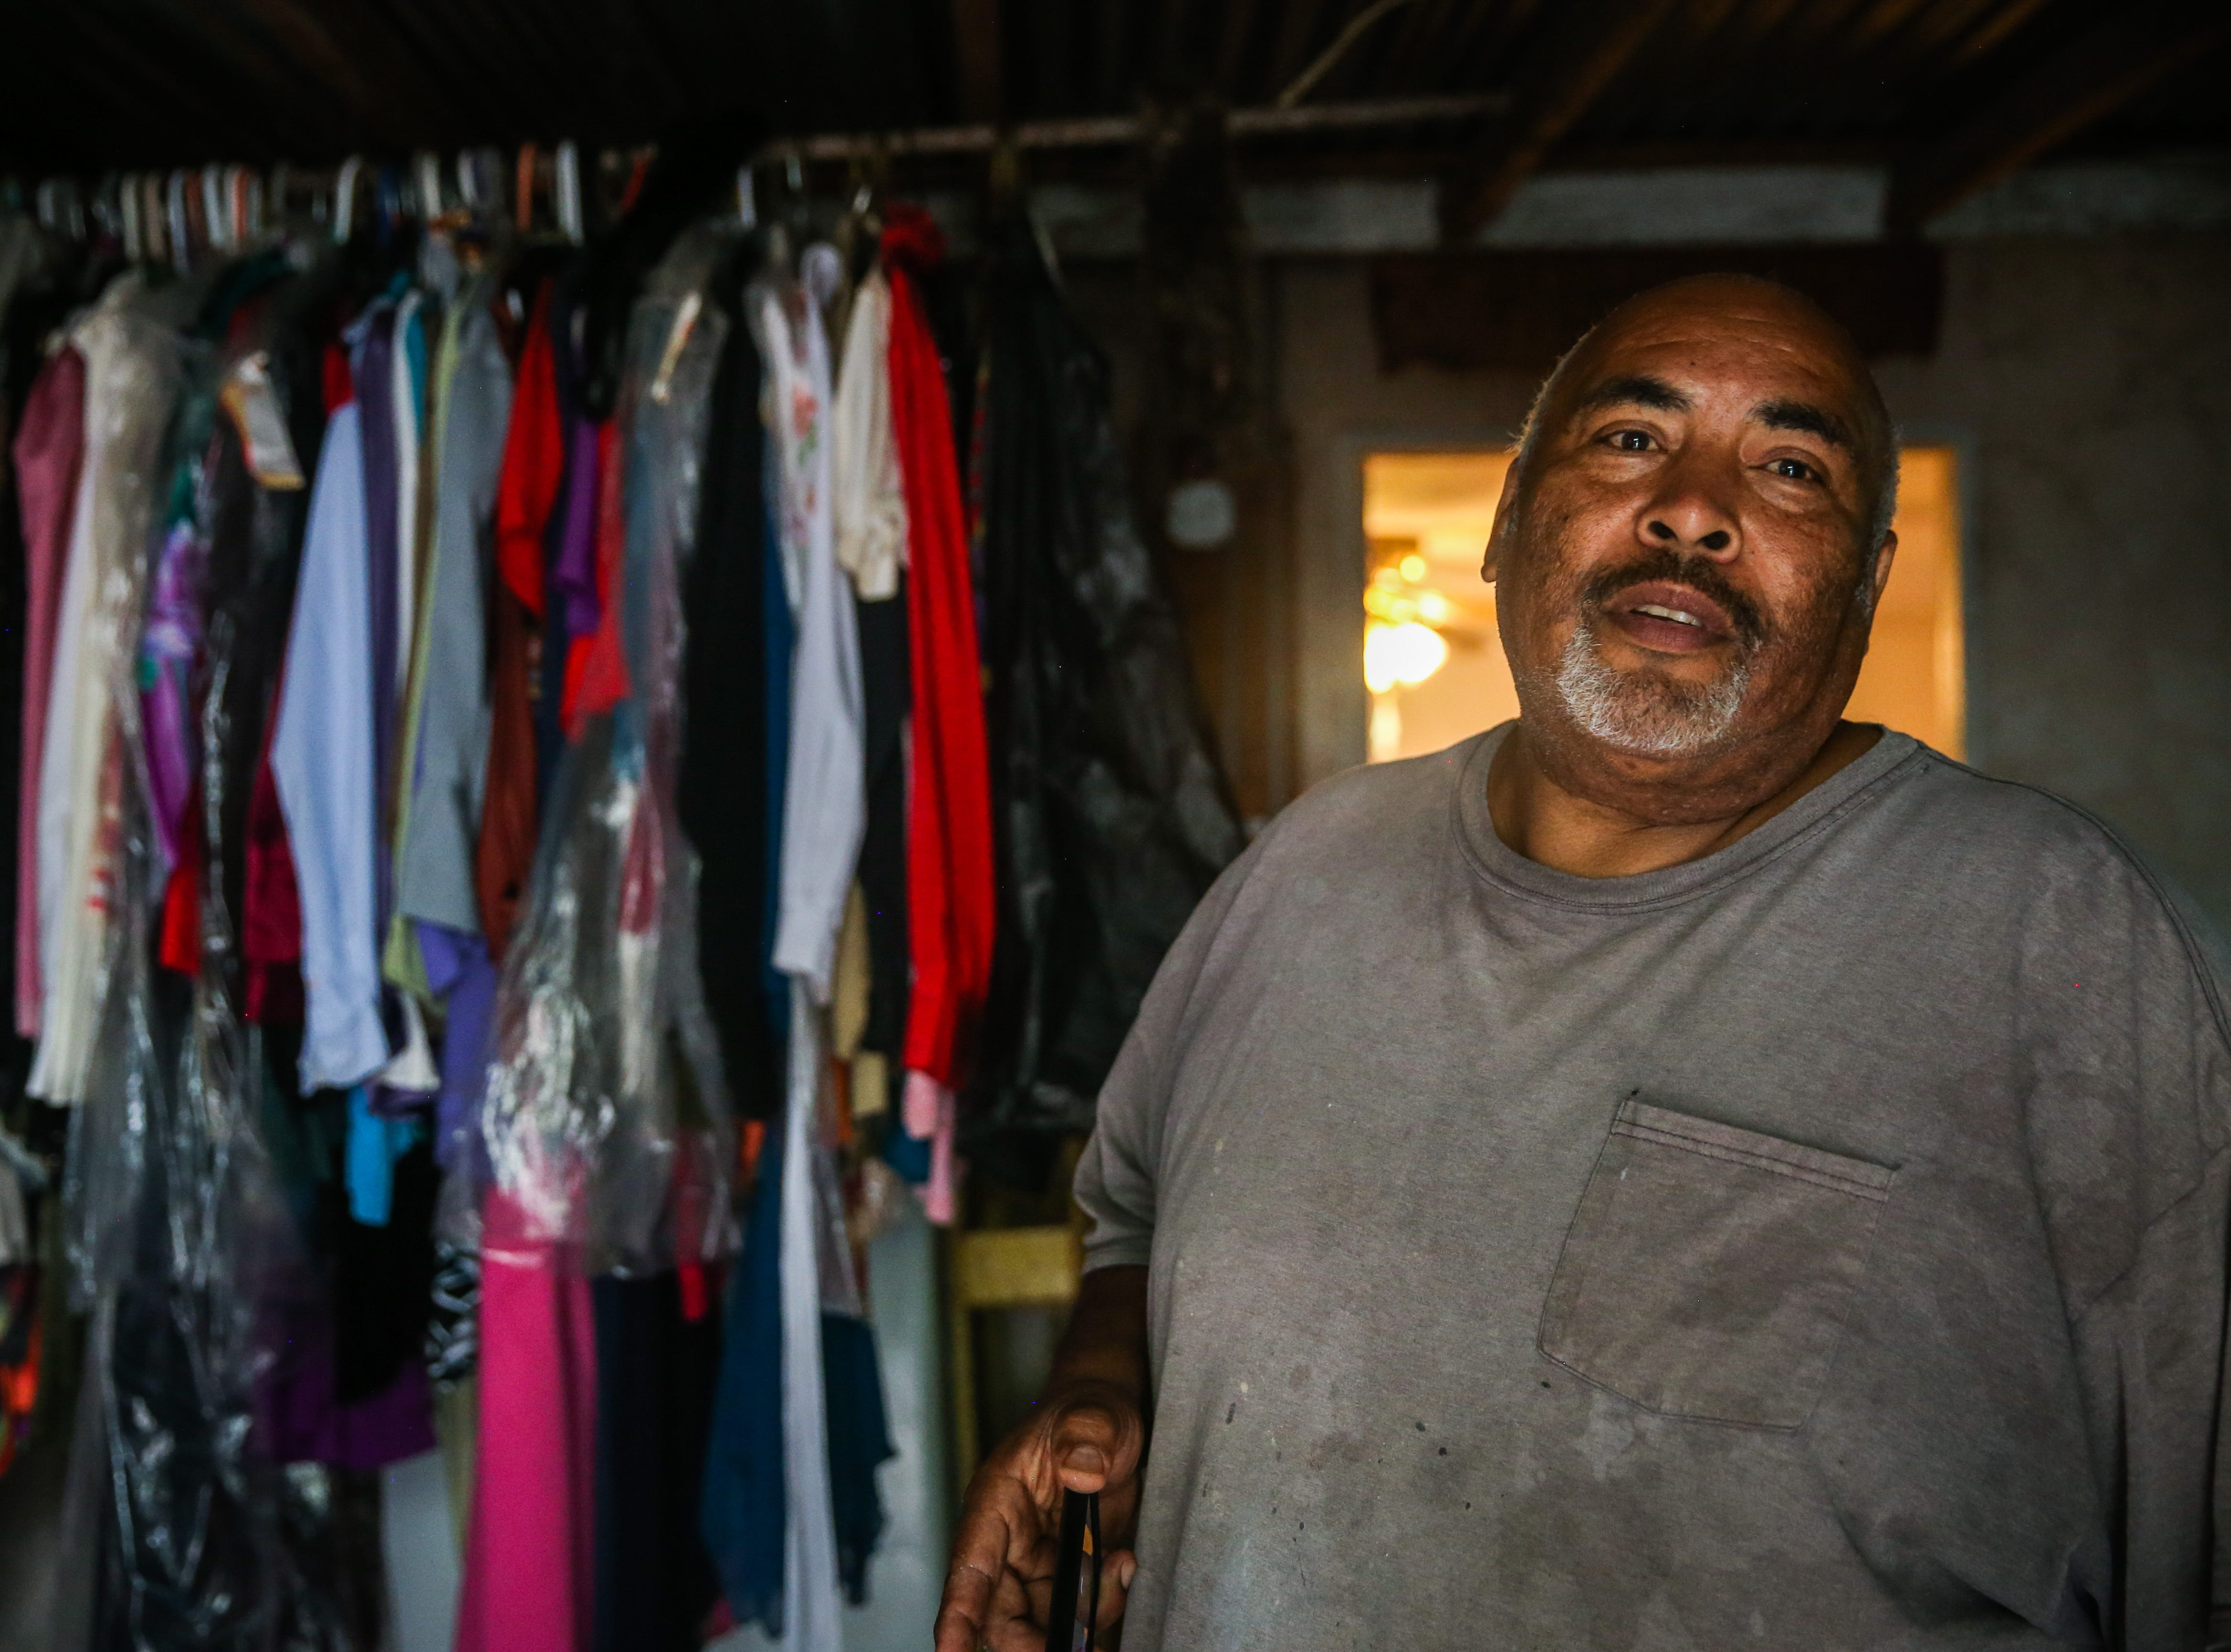 Felip DeHoyos talks about saving items and clothes that belonged to his mother Nov. 8, 2018, during the Sept. 21 flood in Sonora. DeHoyos lost his mother two years ago and is rebuilding the family home in her honor.